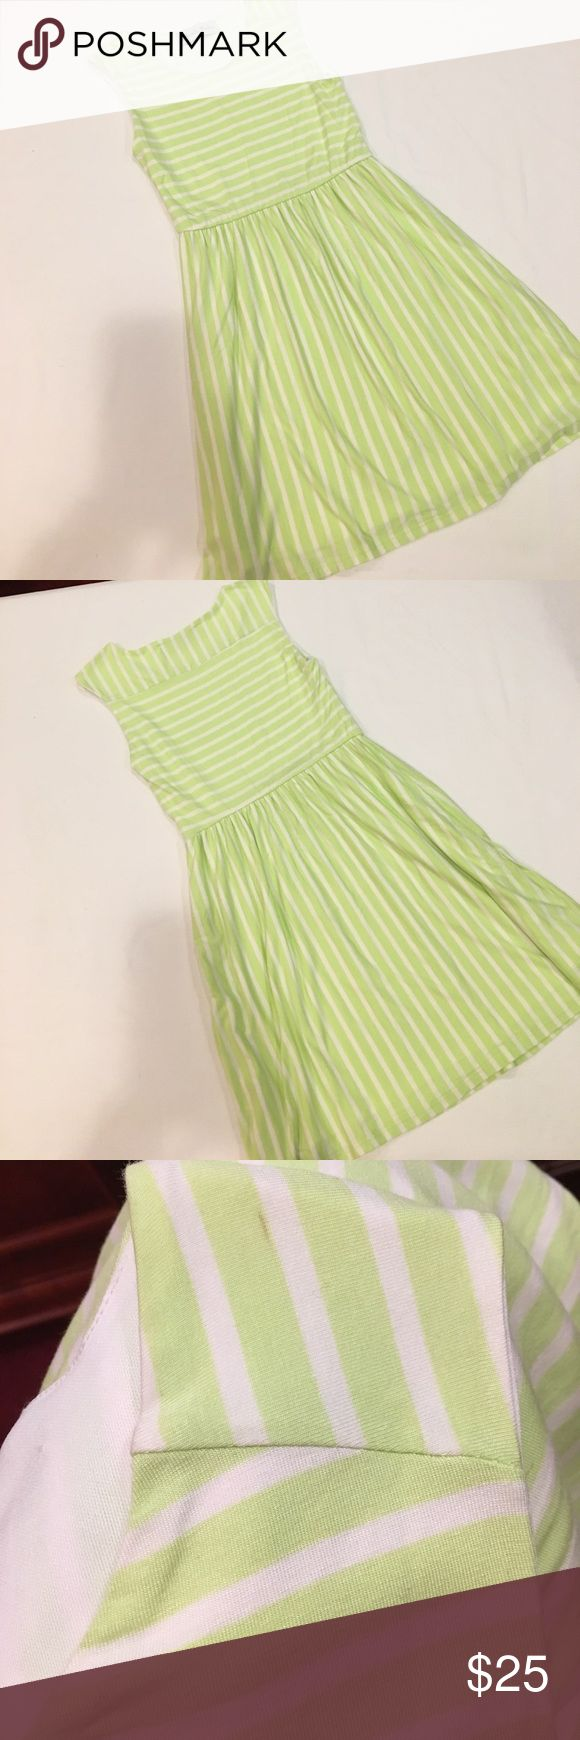 "Gabriella Rocha dress NWOT Gabriella Rocha dress. Fitted bodice with flair skirt. Mint green and white stripe dress. Approximately 32"" Long from shoulder. slight mark on shoulder that is in the stitching. NWOT. Never worn. Gabriella Roche Dresses"